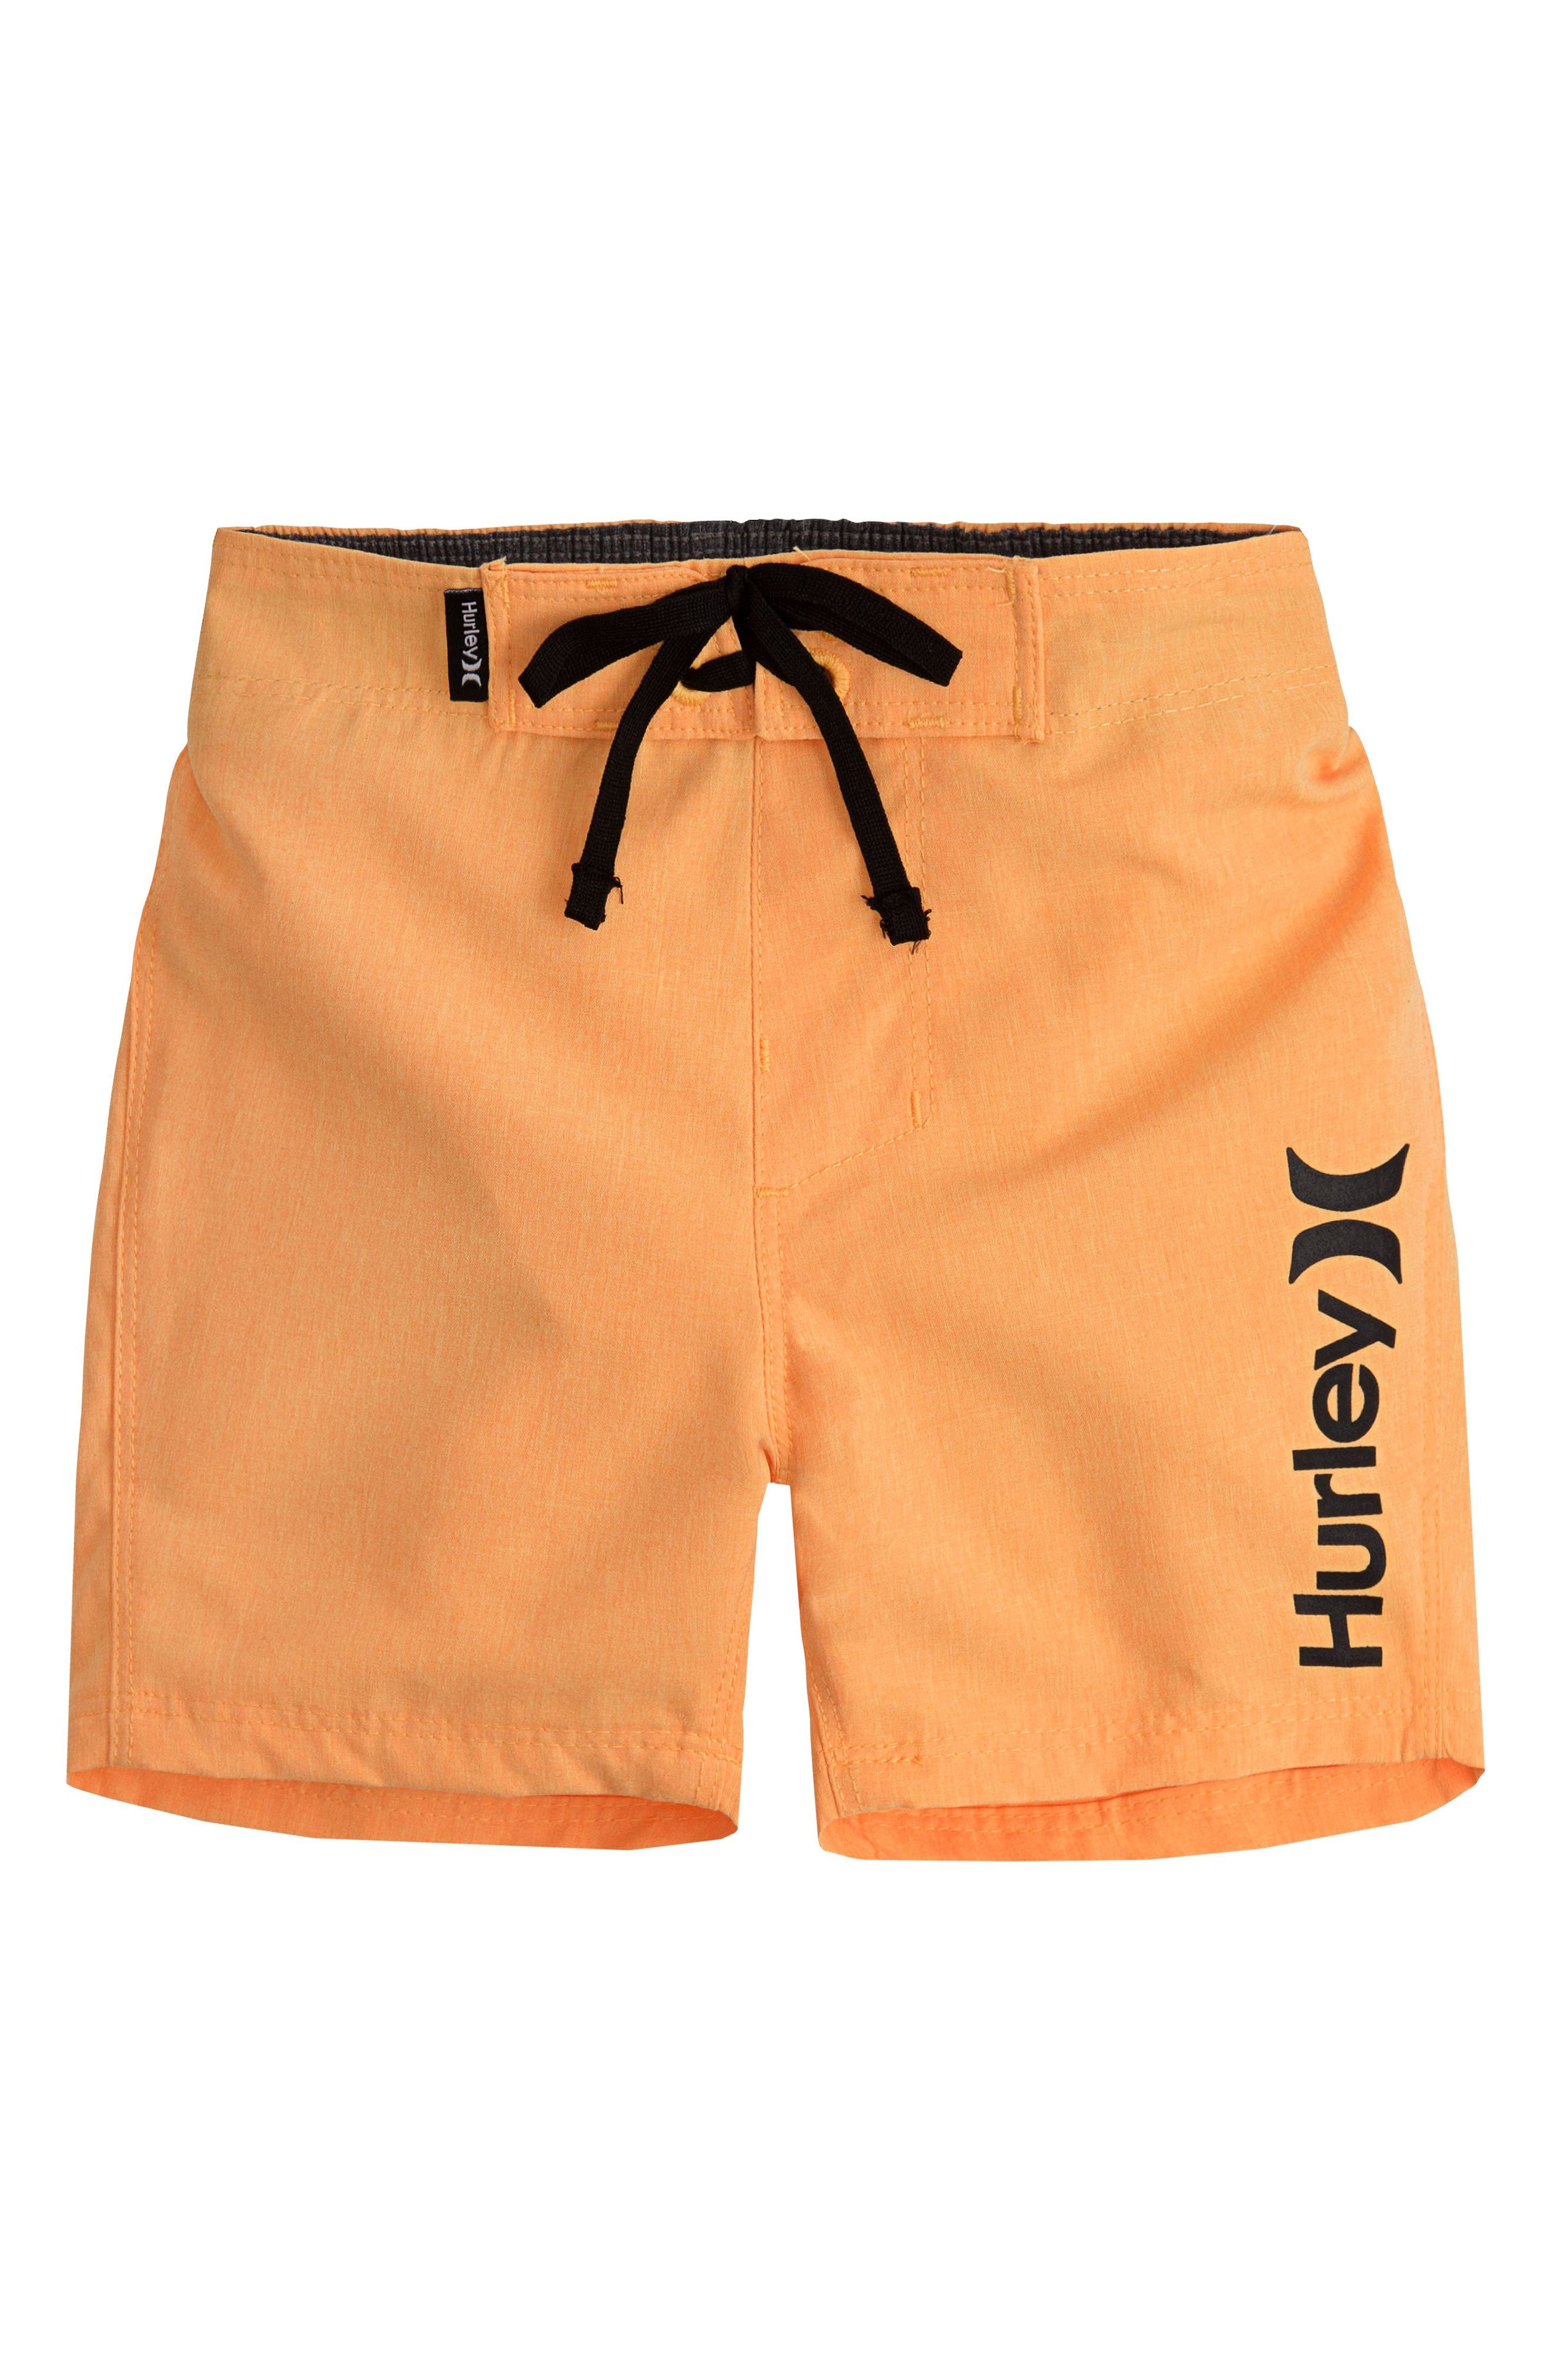 One and Only Dri-FIT Board Shorts,                             Main thumbnail 1, color,                             Laser Orange Heather